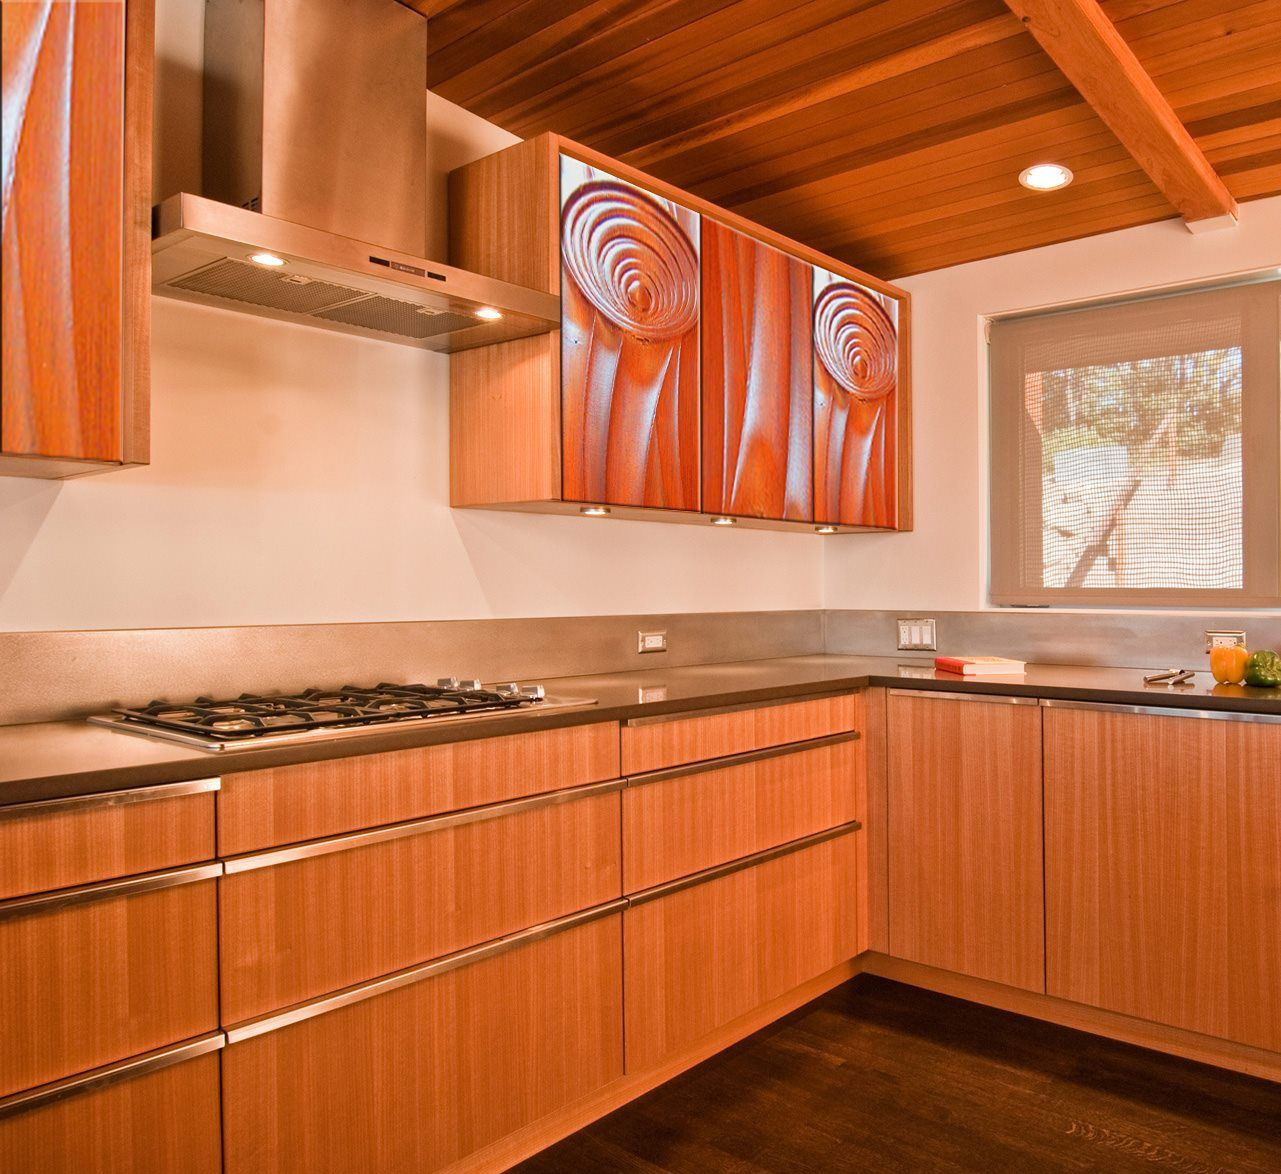 Custom Made Kitchen Cabinet: Hand Crafted Kitchen Decodoors™ By MNM Design